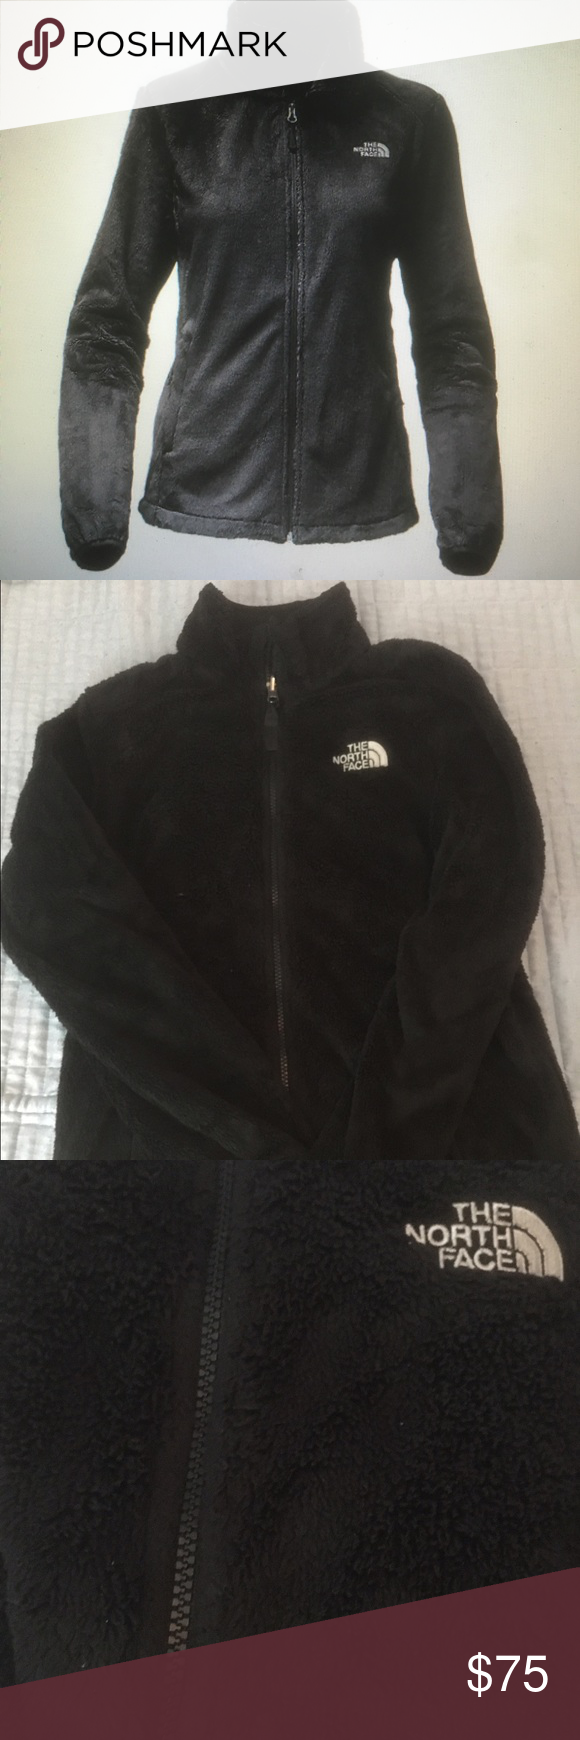 North Face Osito 2 Jacket Size small black Women's osito 2 jacket north face in black fleece zip up with no hood.  Worn a couple times but in perfect condition. Size small. The North Face Jackets & Coats